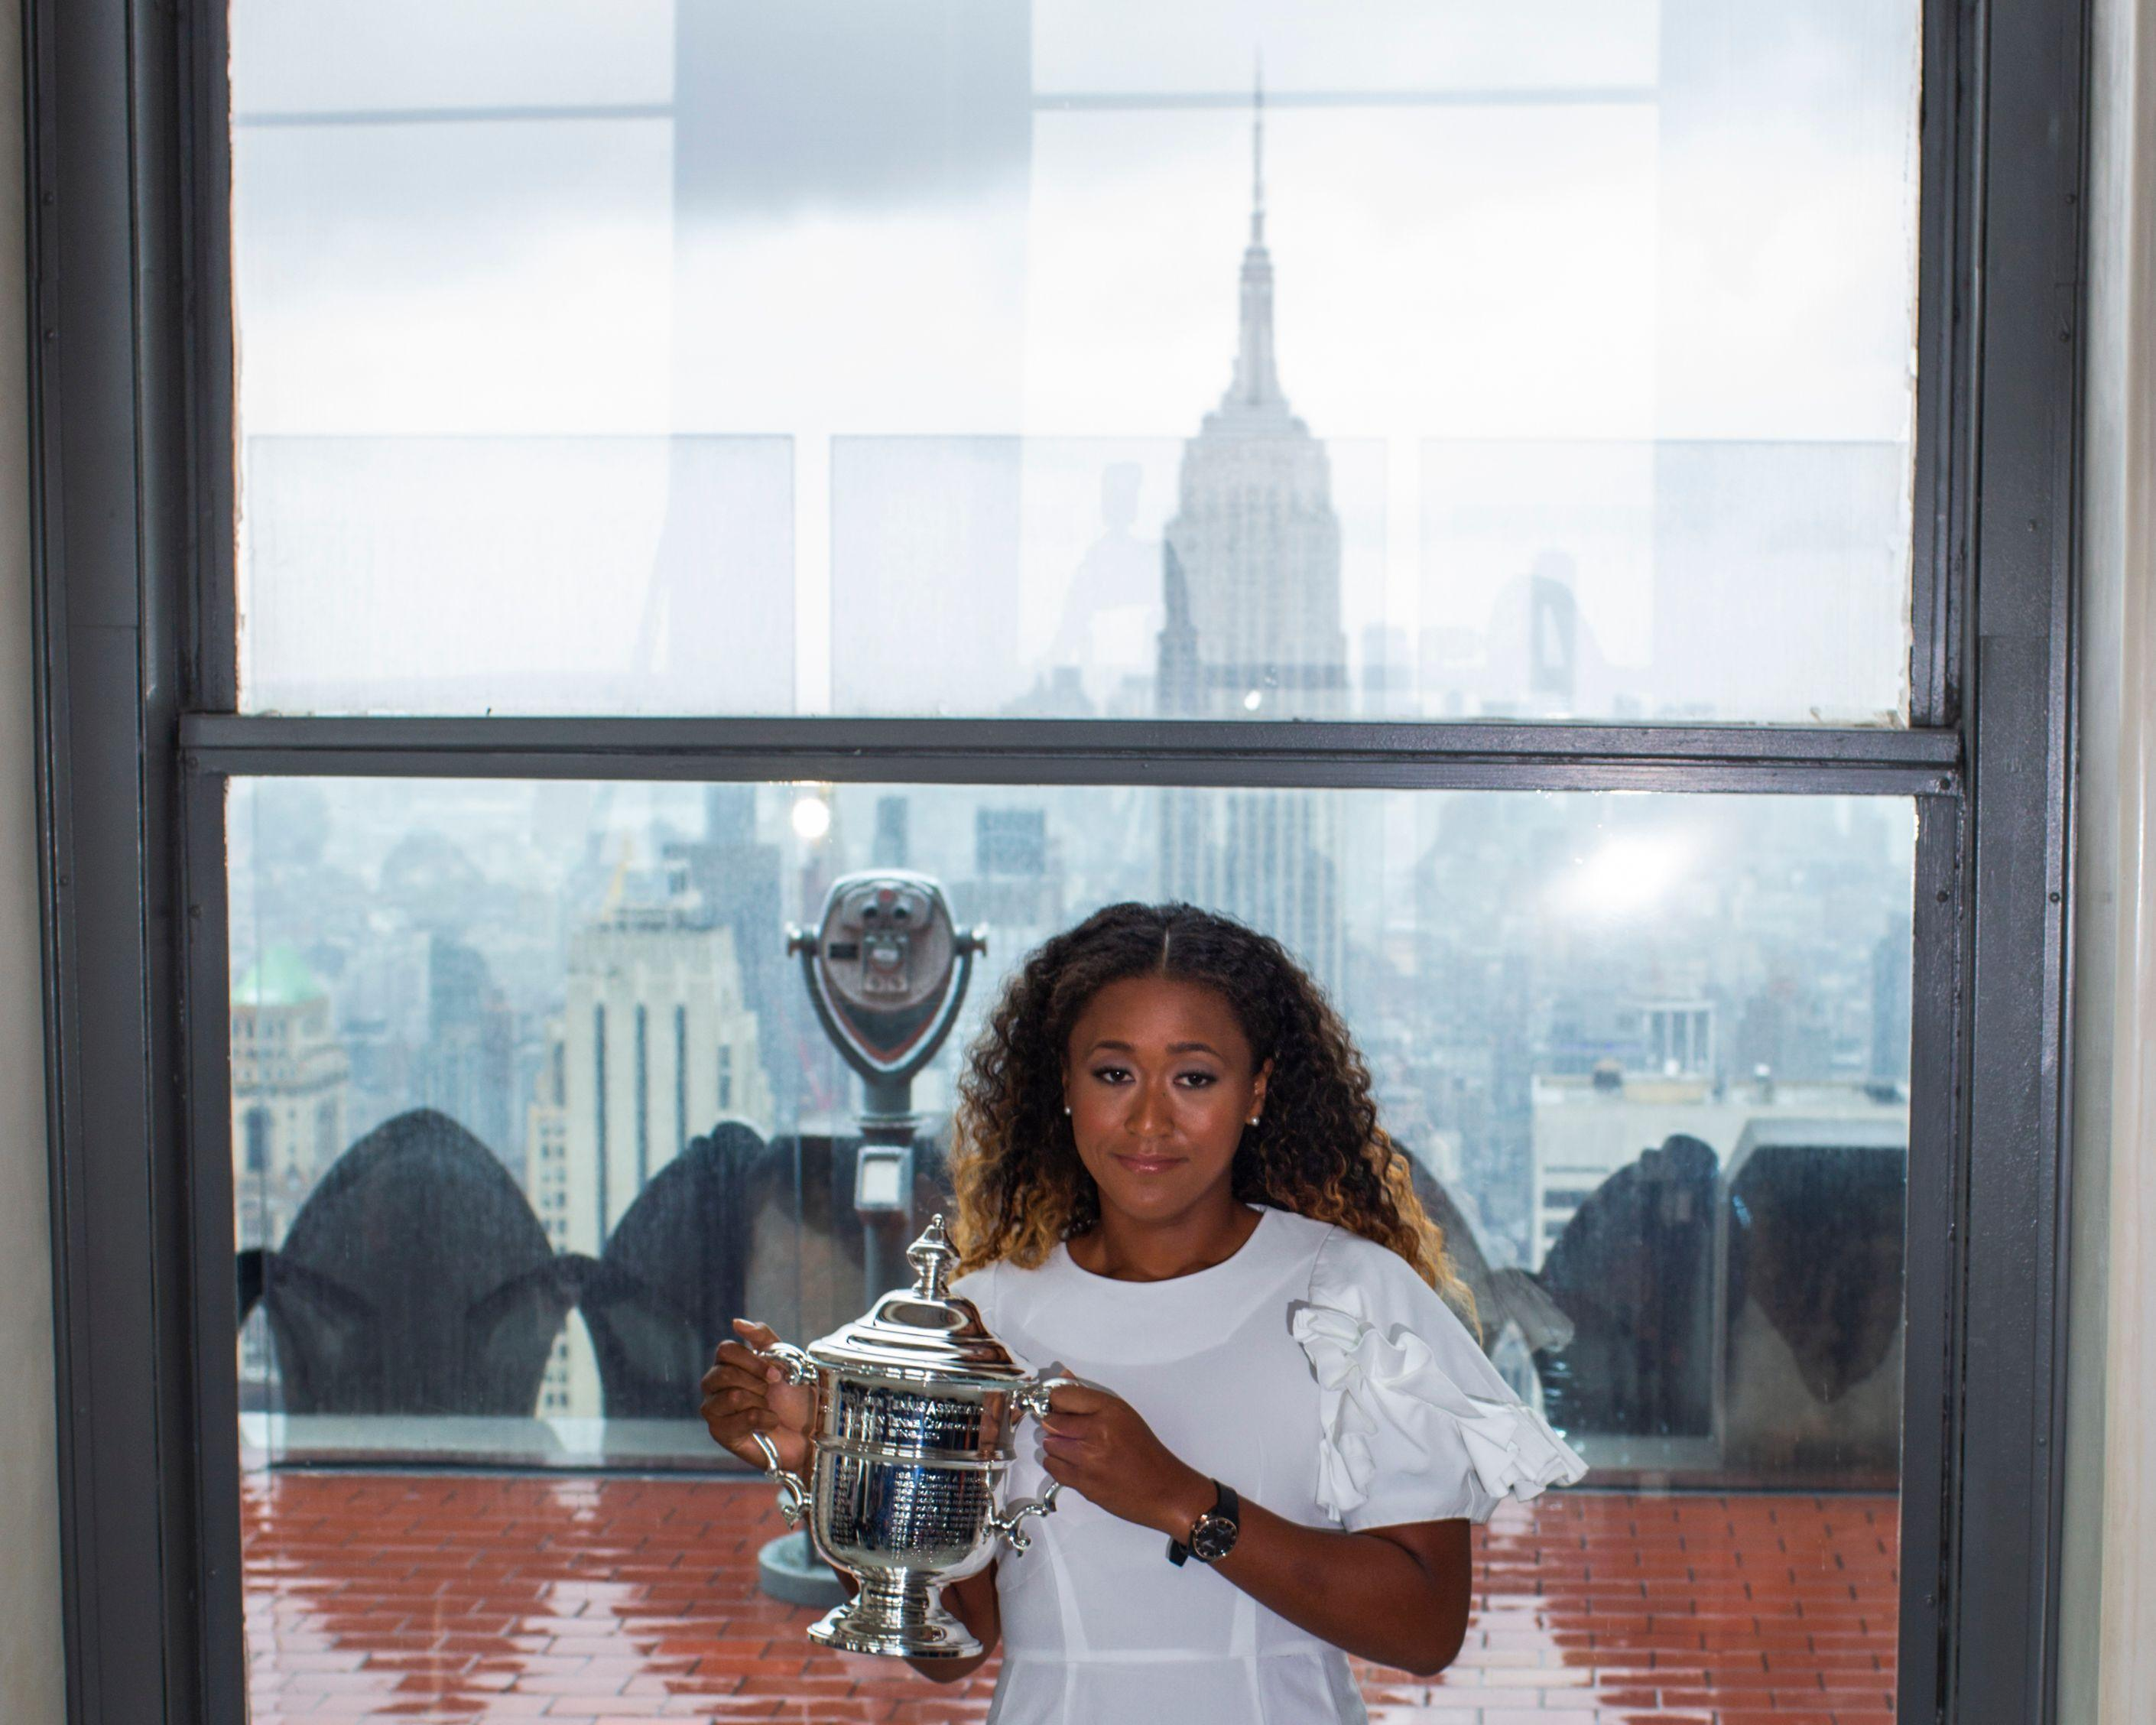 Osaki poses with the trophy at the Top of the Rock Observatory the day after winning the US Open